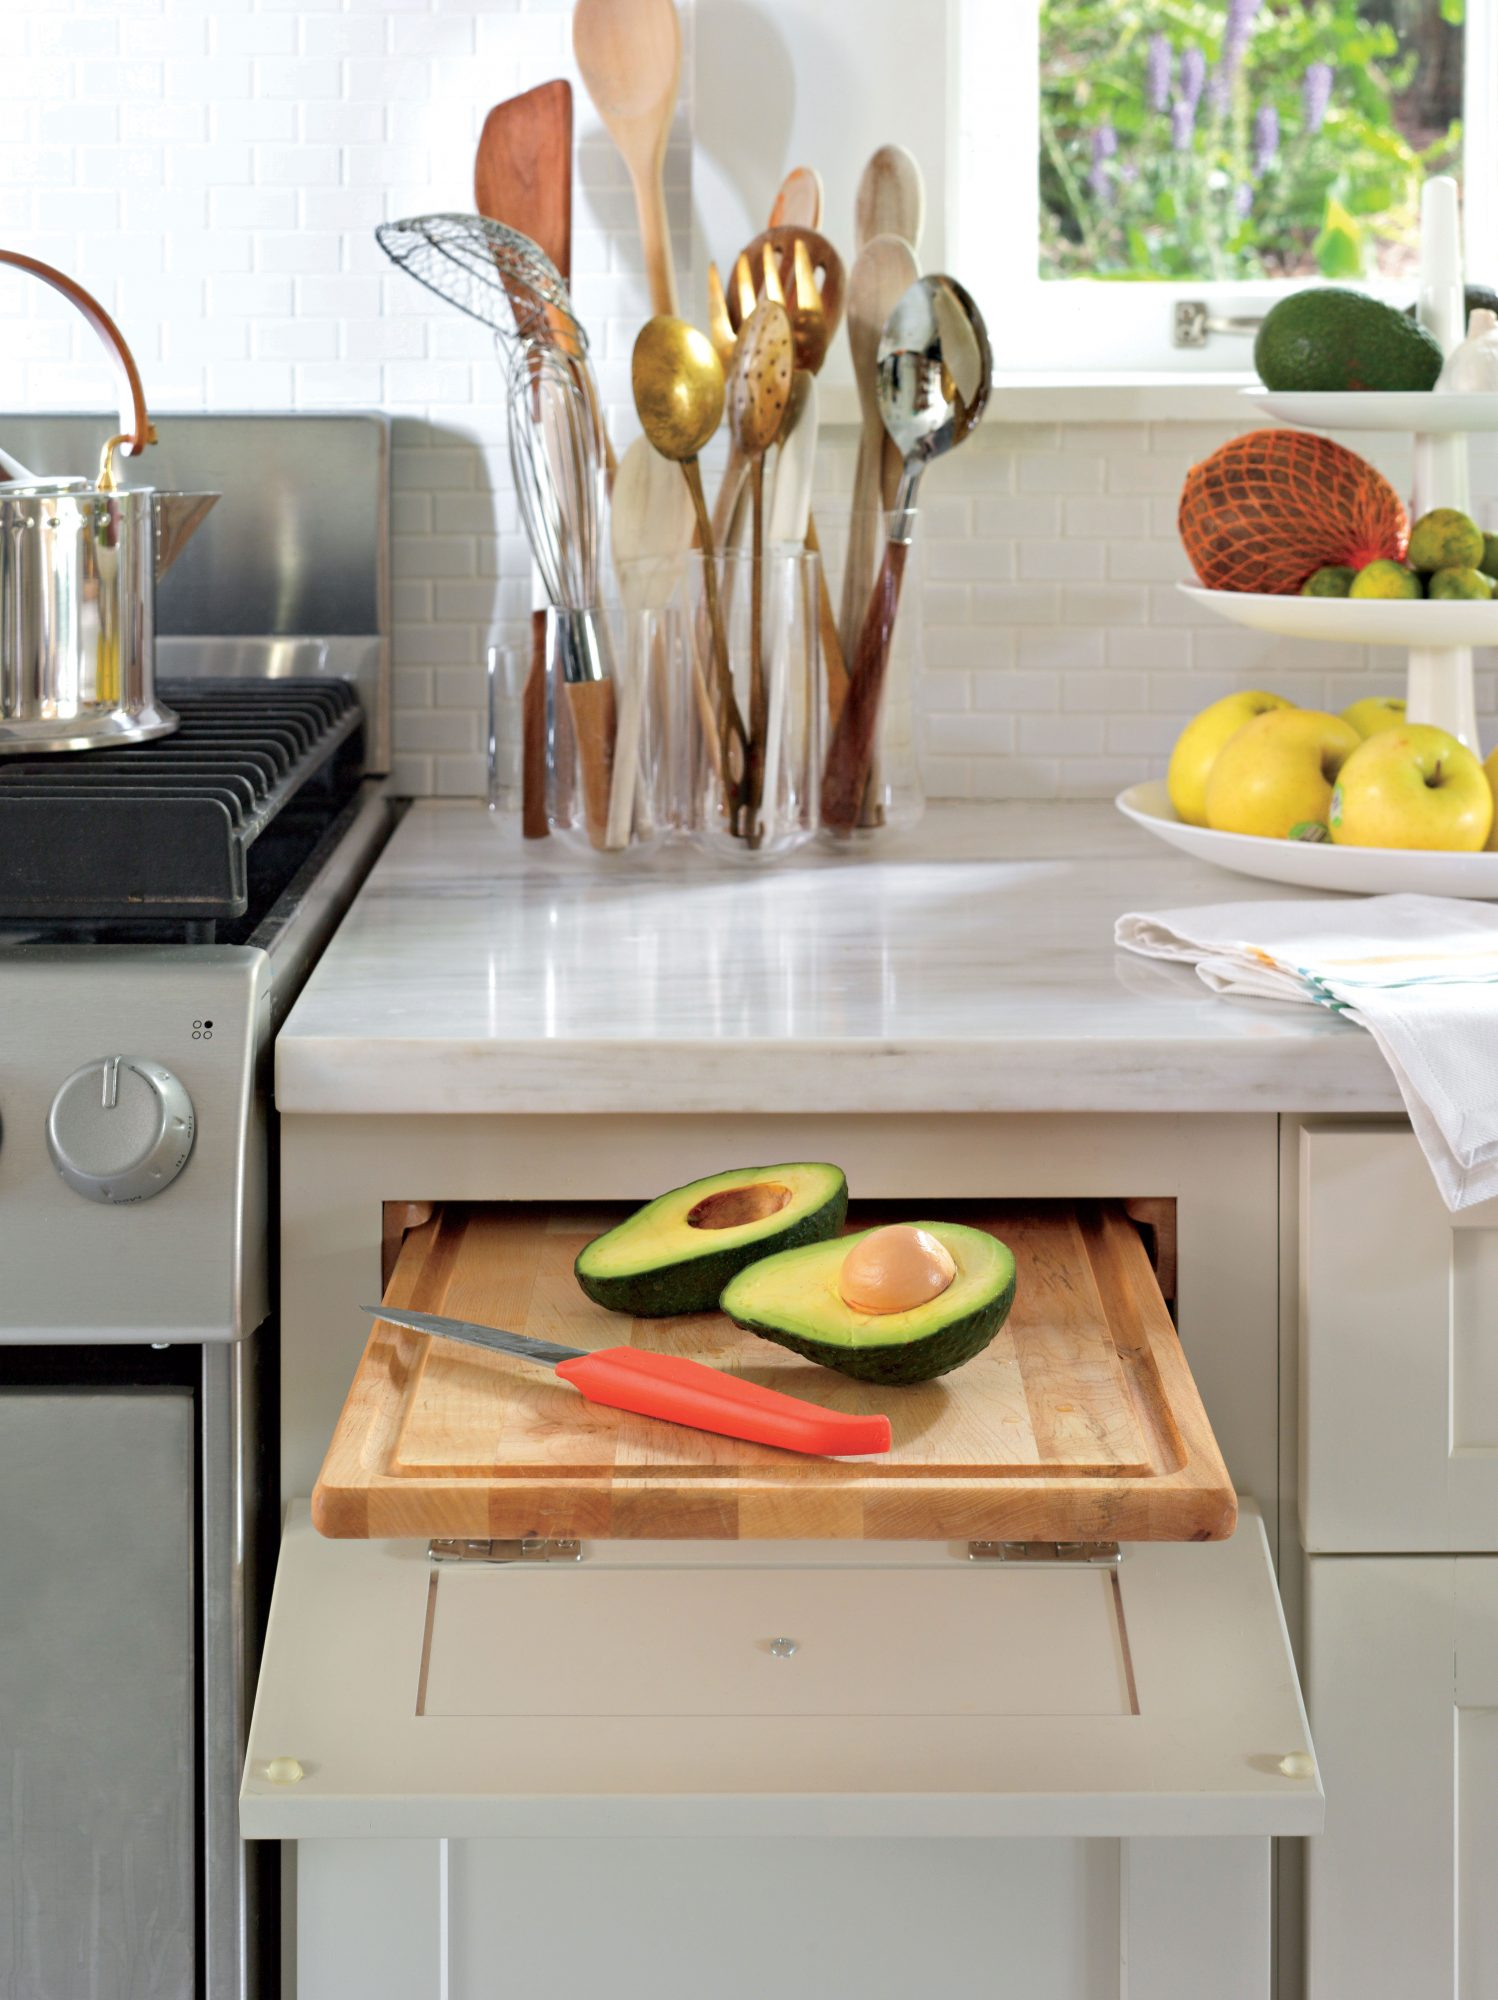 The Real Reason Old Kitchens Have Pull Out Cutting Boards Will Surprise You Southern Living